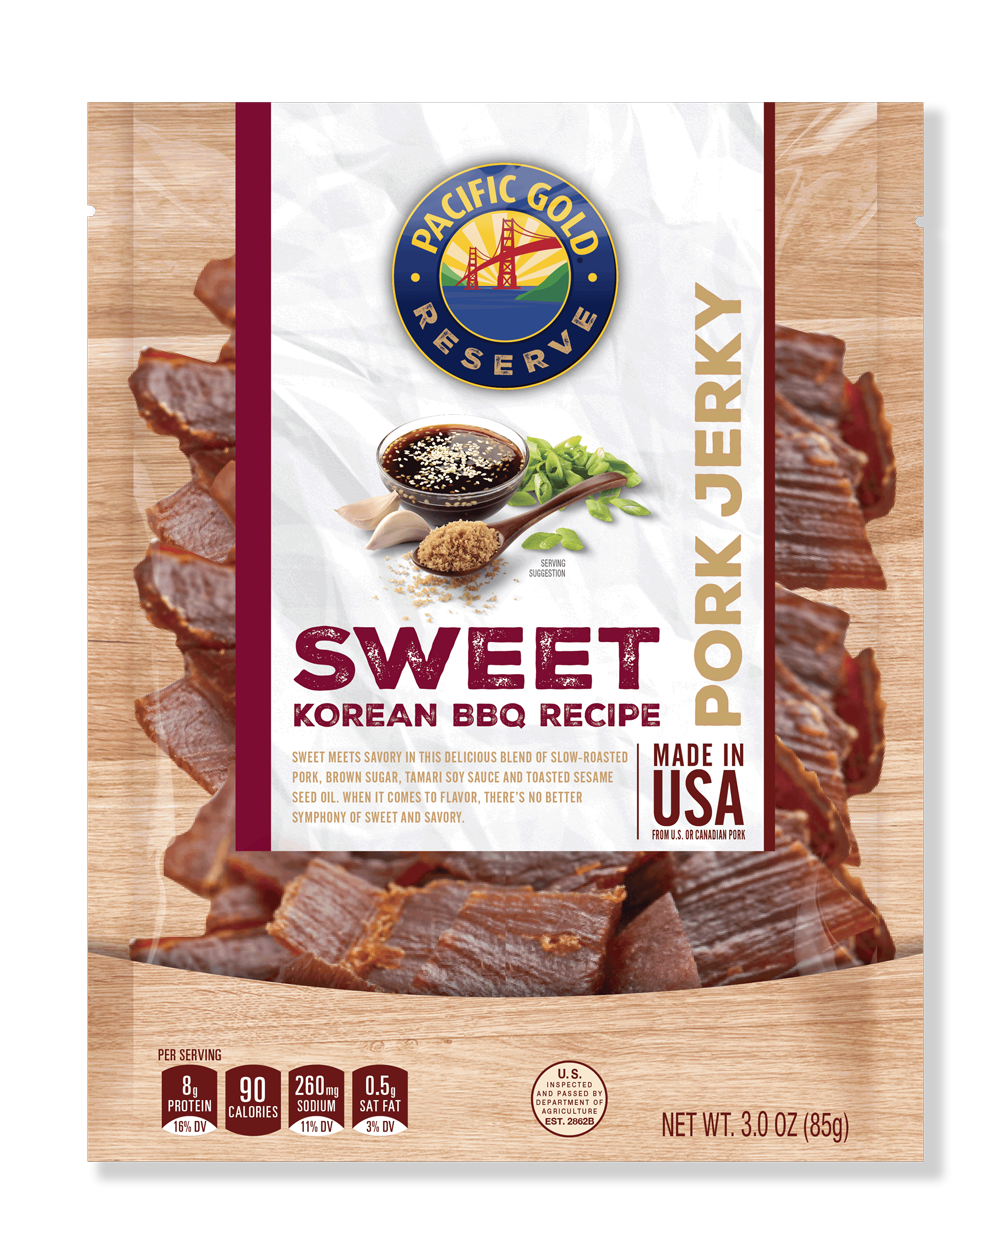 Oberto_PacGold_KoreanBBQ_Front_0711.png